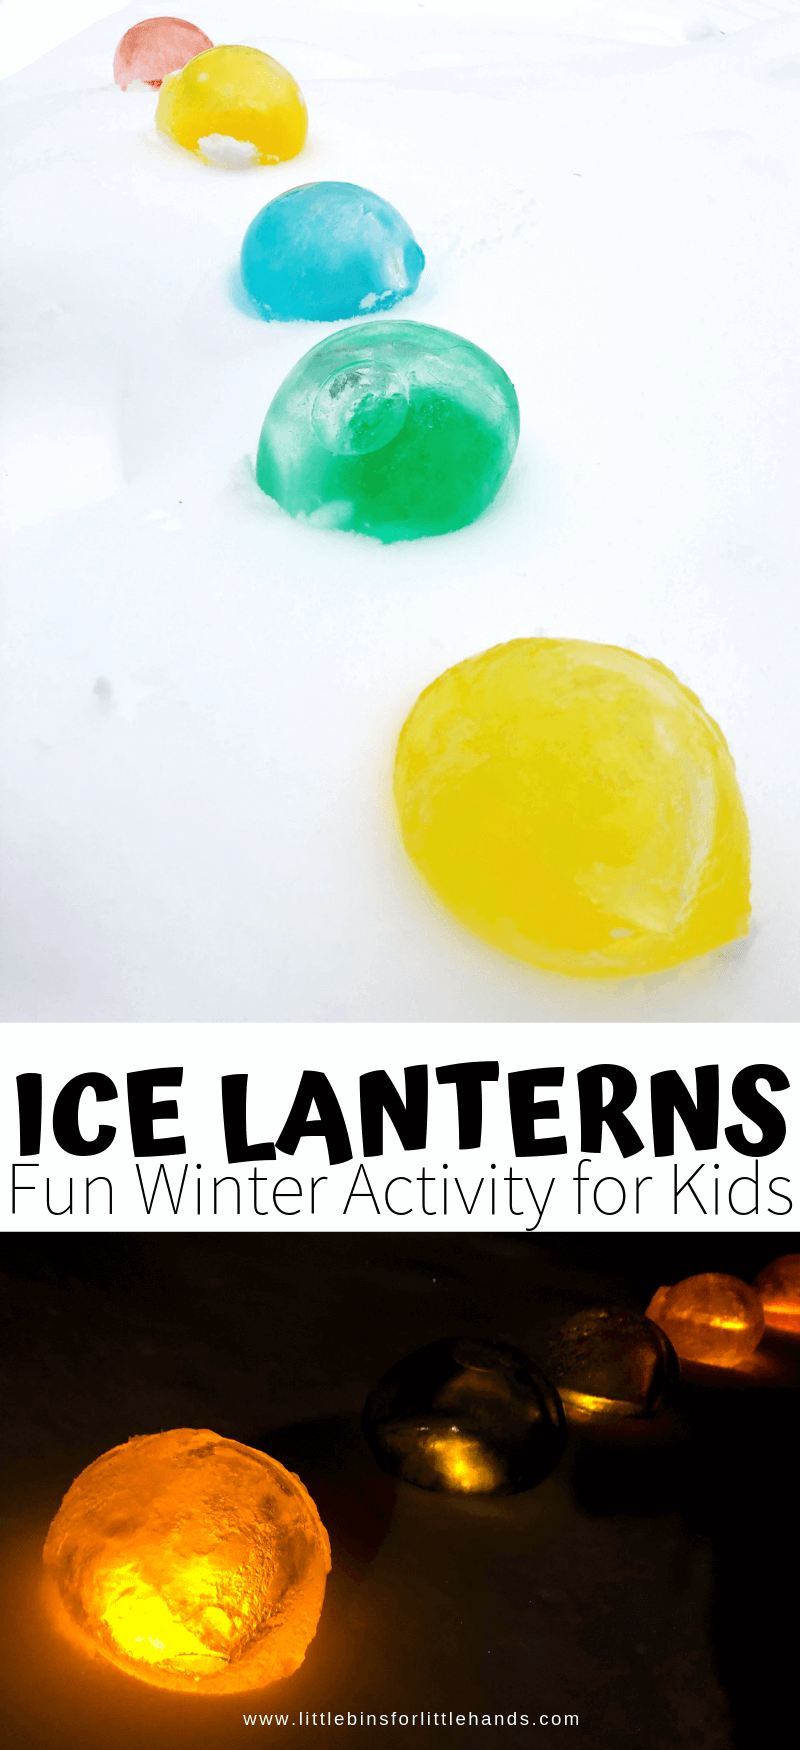 Easy to make ice lanterns for a cool winter science activity with kids